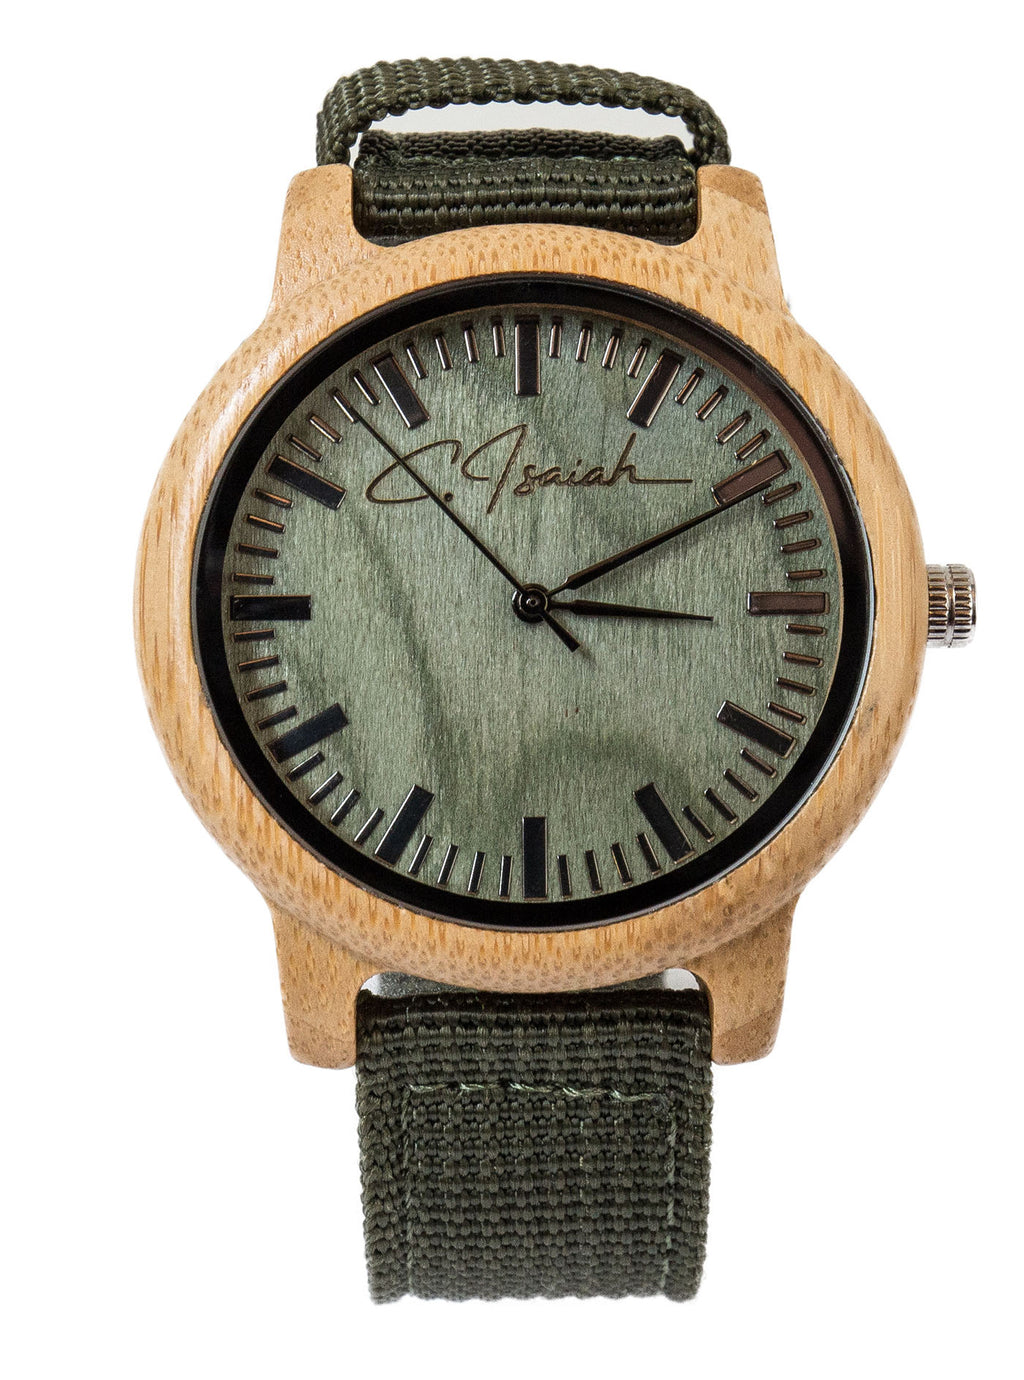 The Nubian - Wooden Watch, Wooden Watch for Men, [Gifts for Men],- Carter Isaiah